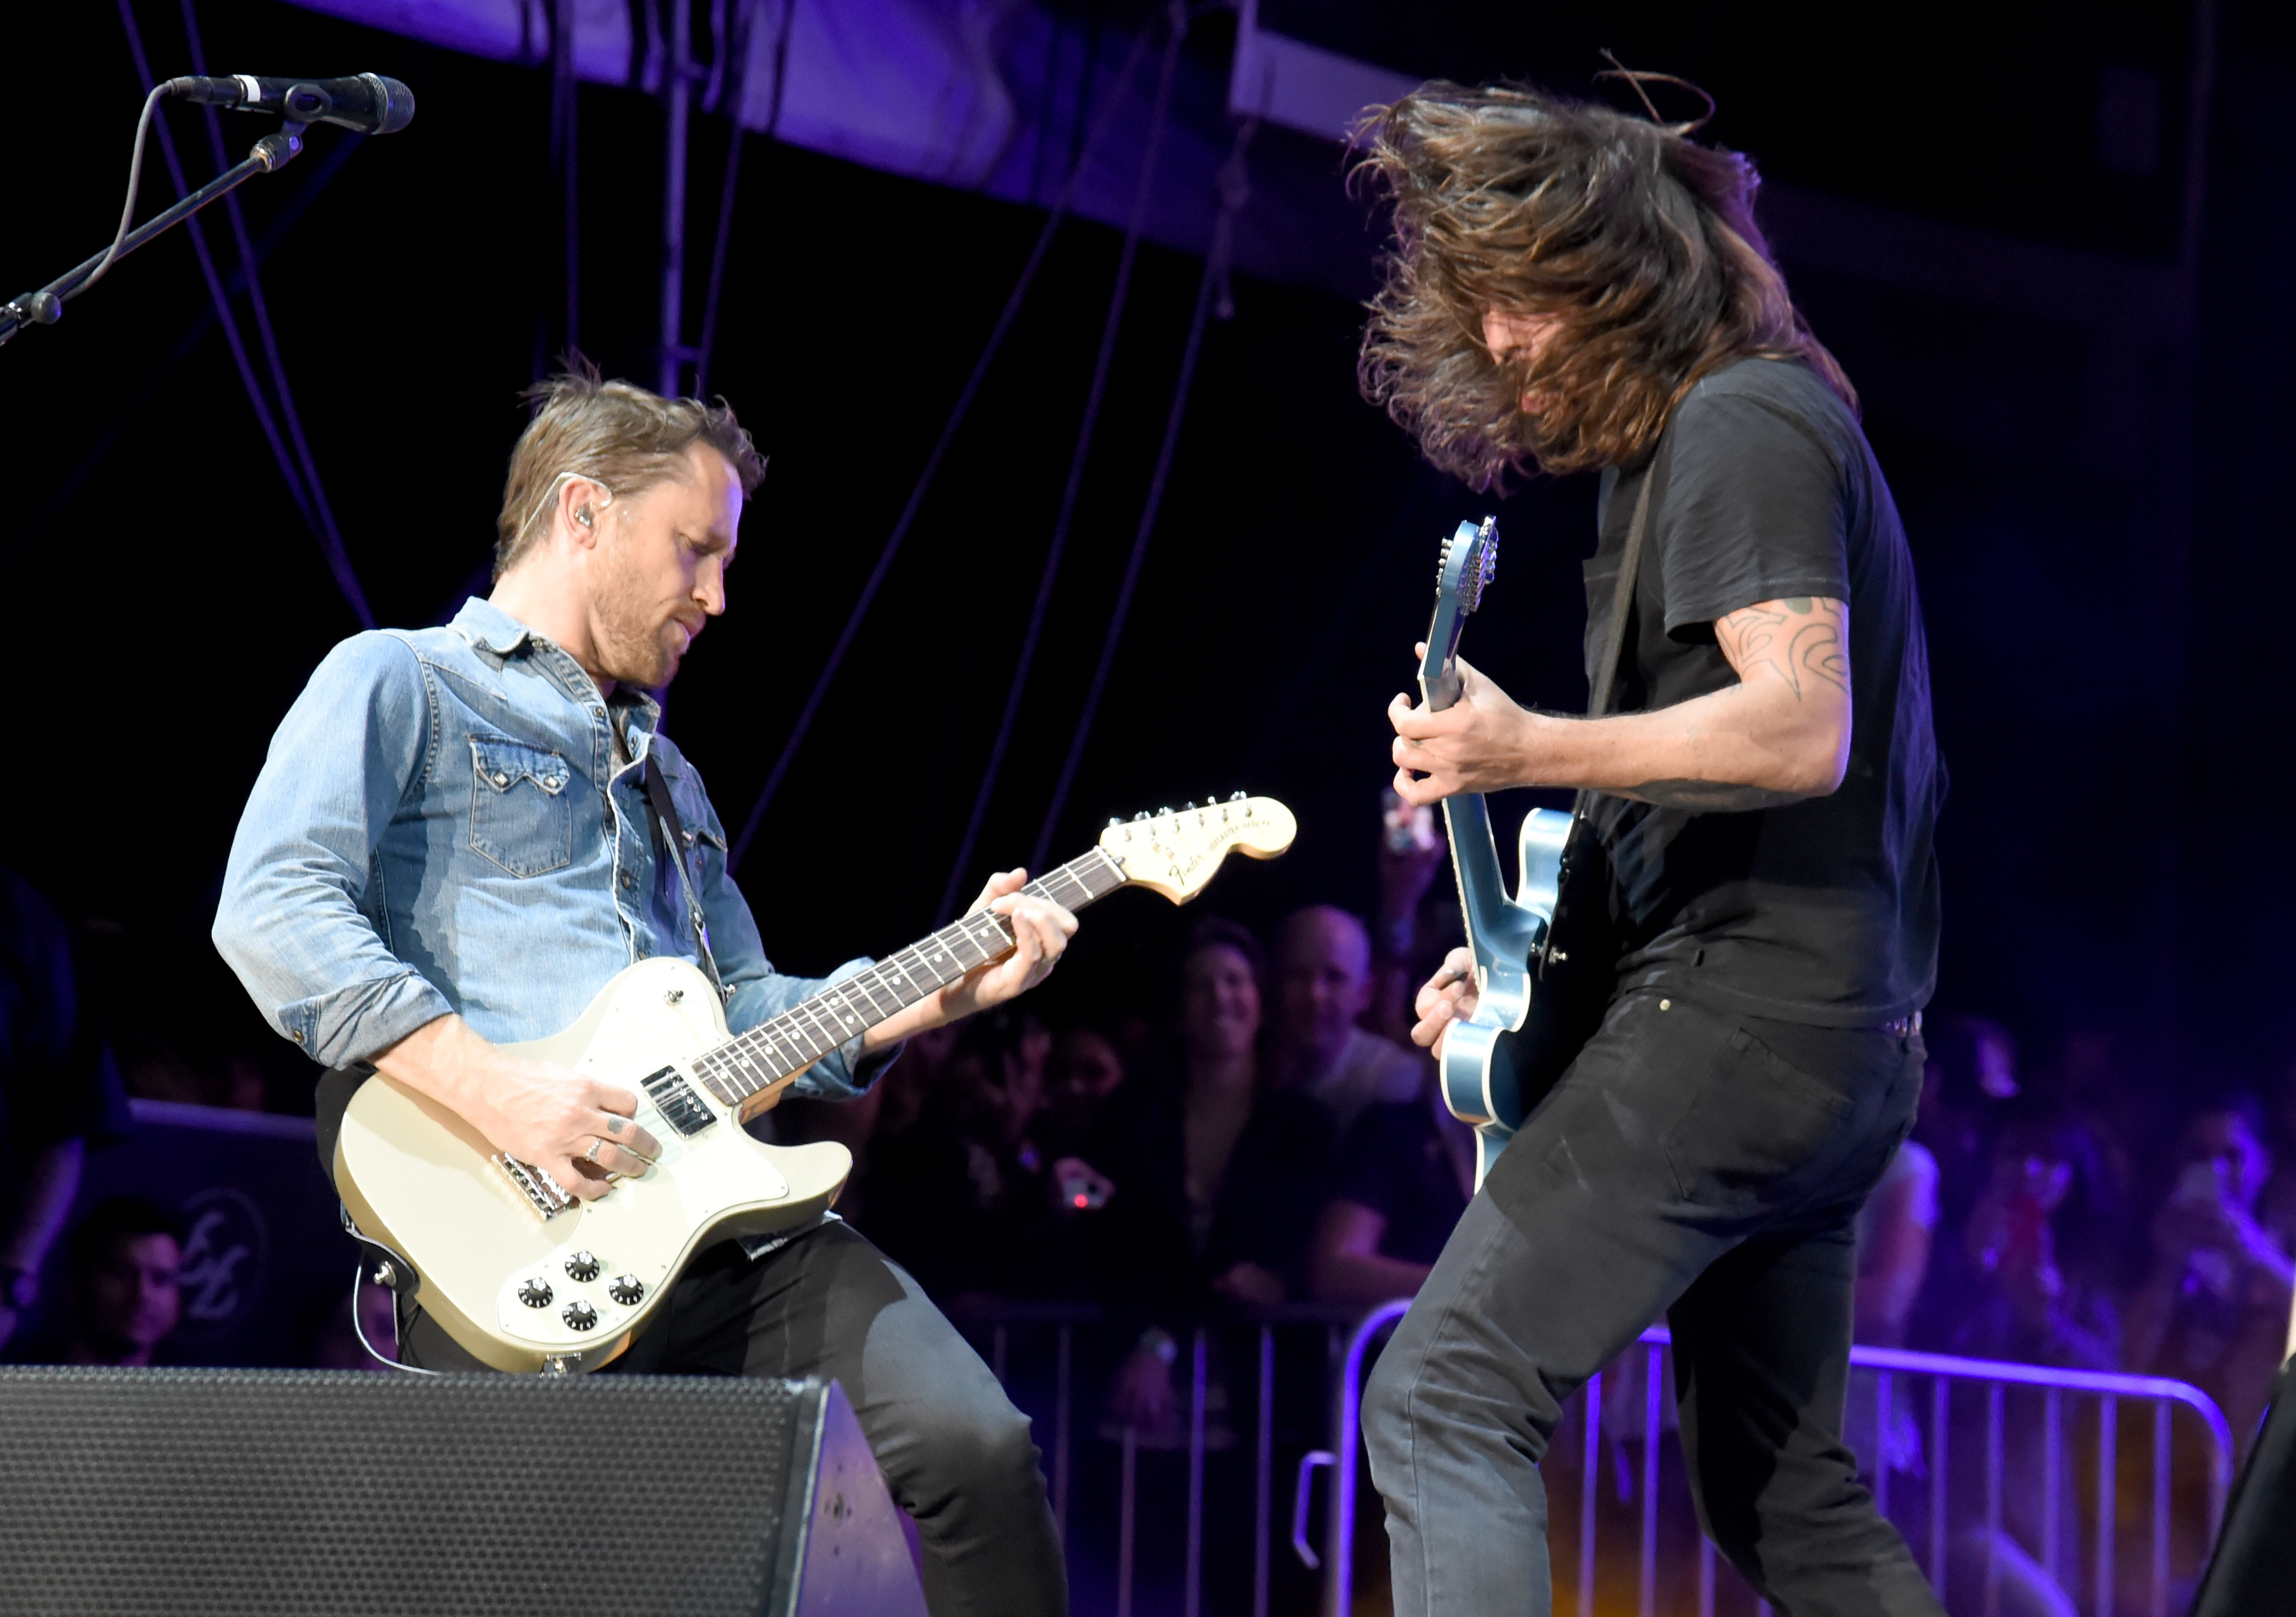 LAS VEGAS, NV - OCTOBER 26:  (L) Guitarist Chris Shiflett and musician Dave Grohl of Foo Fighters perform onstage during day